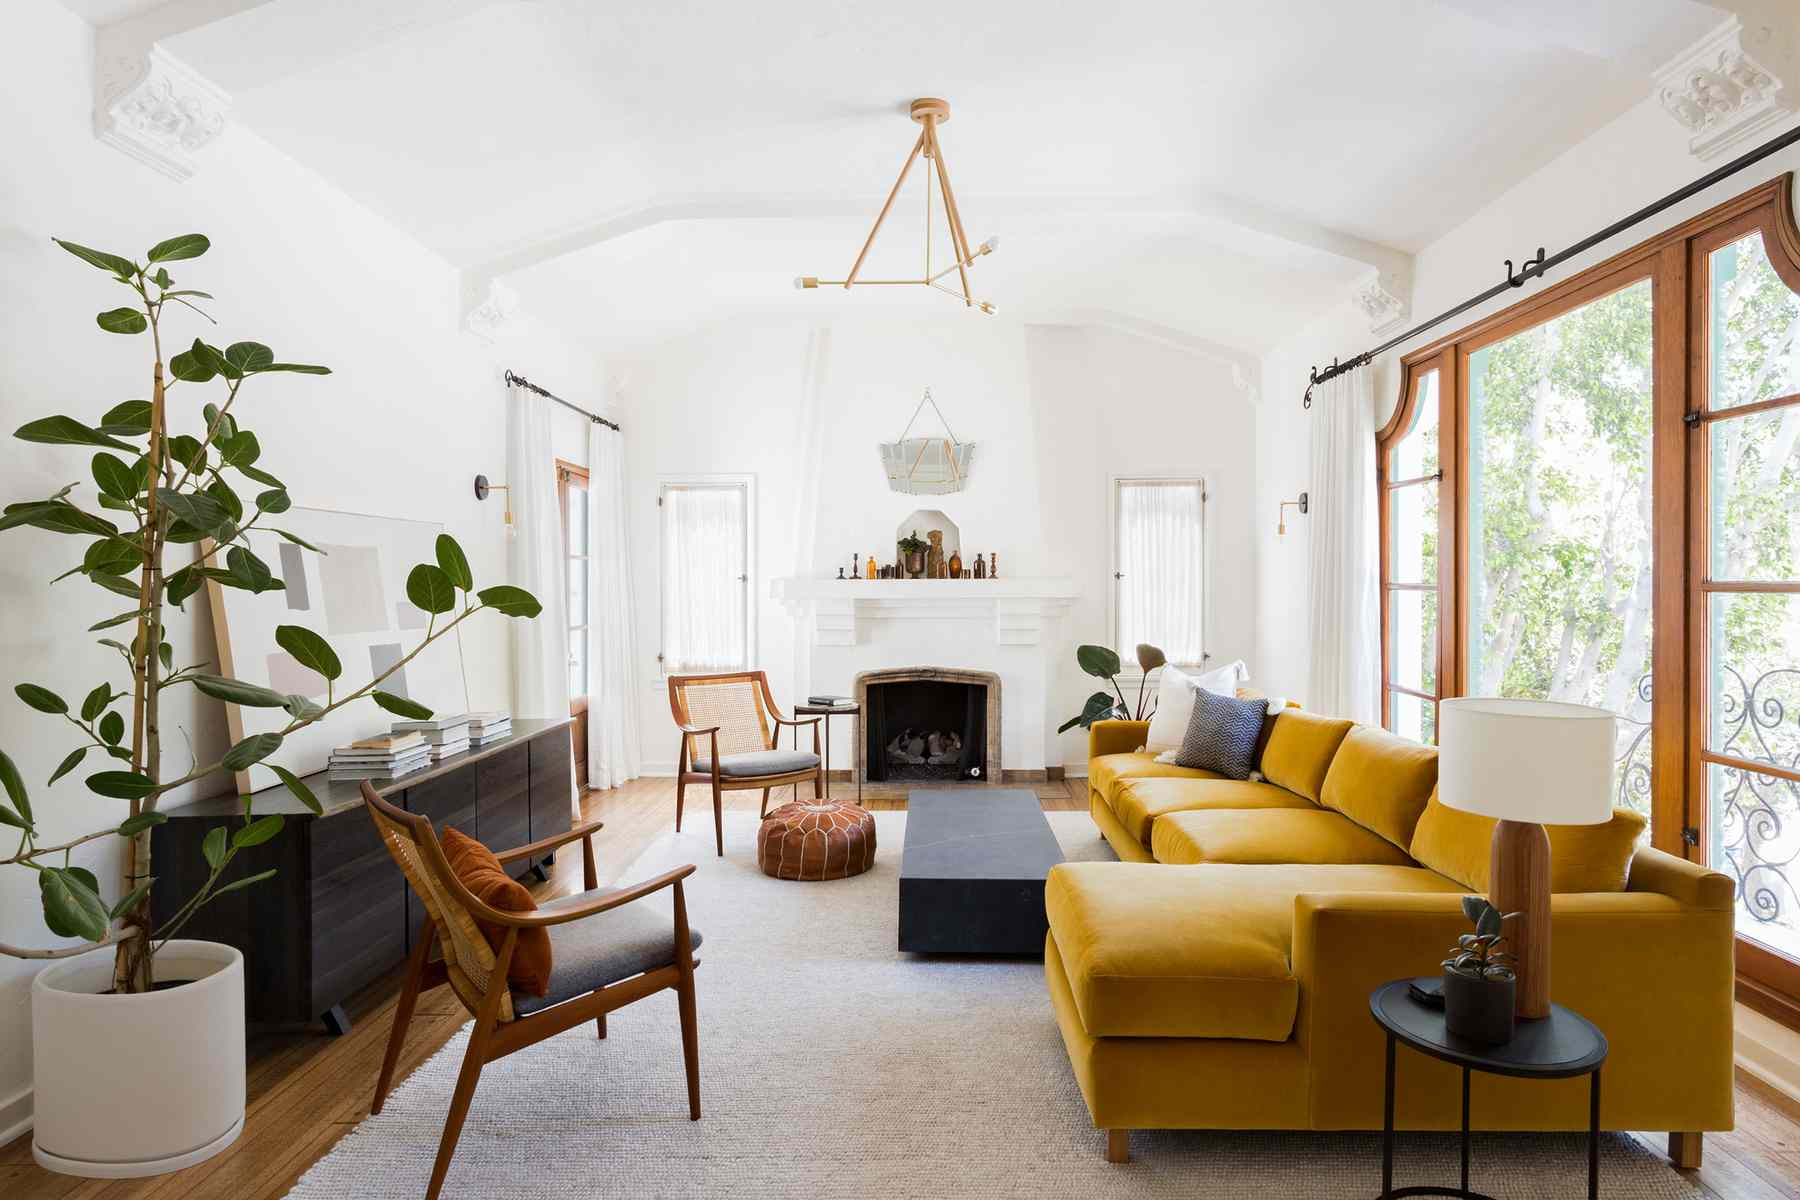 Warm living room with mustard couch.